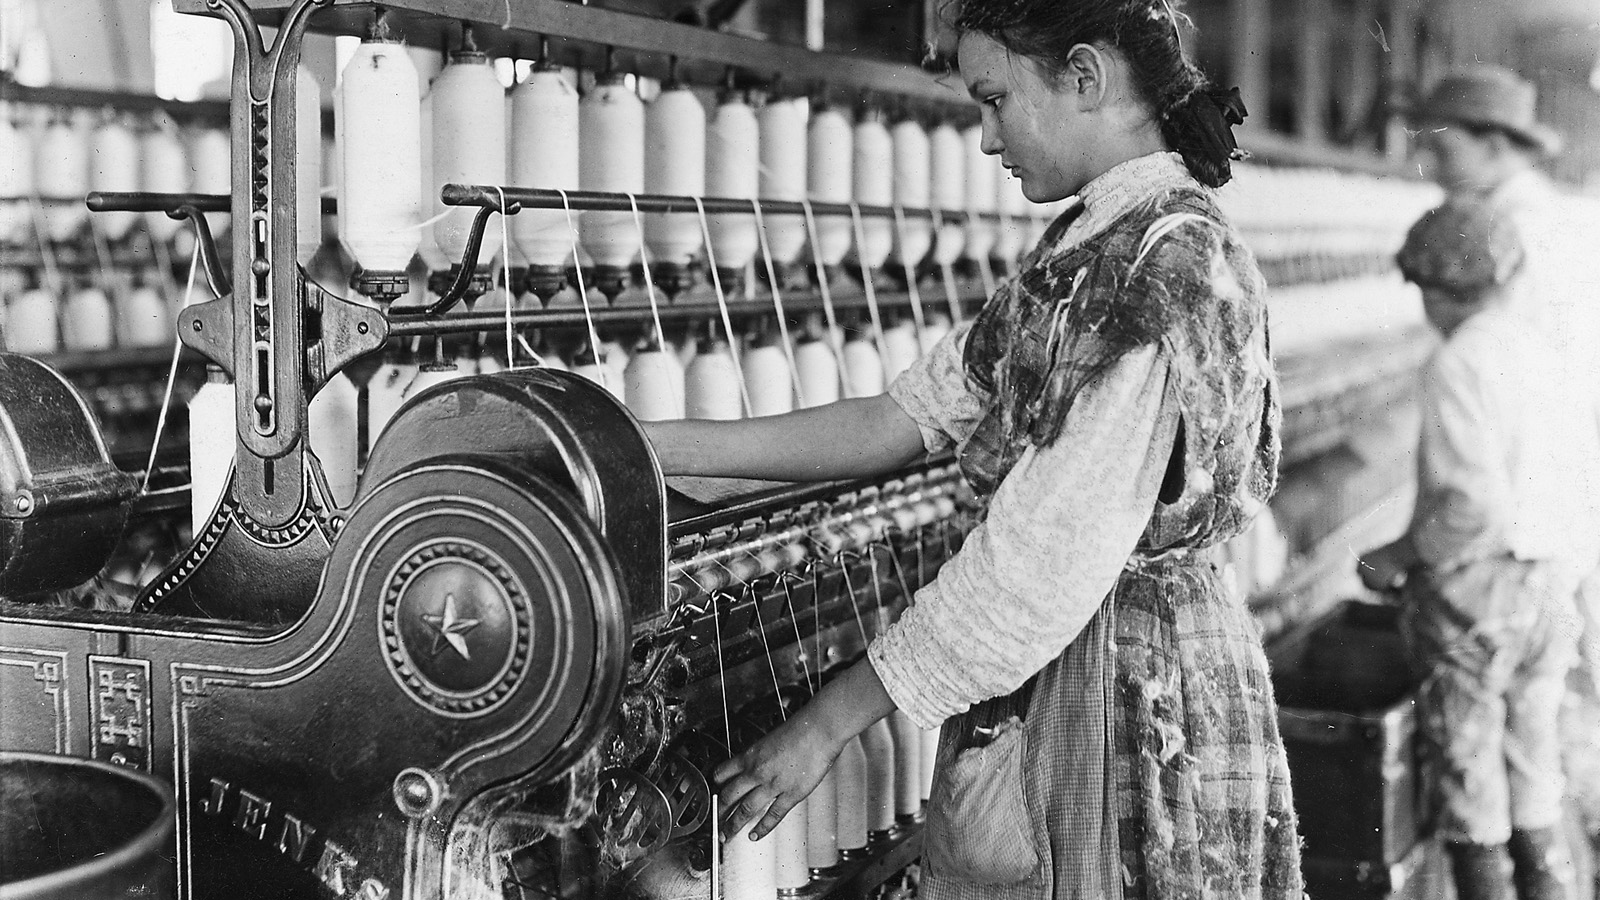 child labor industrial revolution Child labor and the british industrial revolution child labour in britain was called the victorian era, it was known for employing young children in factories and mines the first jobs for children in the industrial revolution were in water-powered cotton mills.